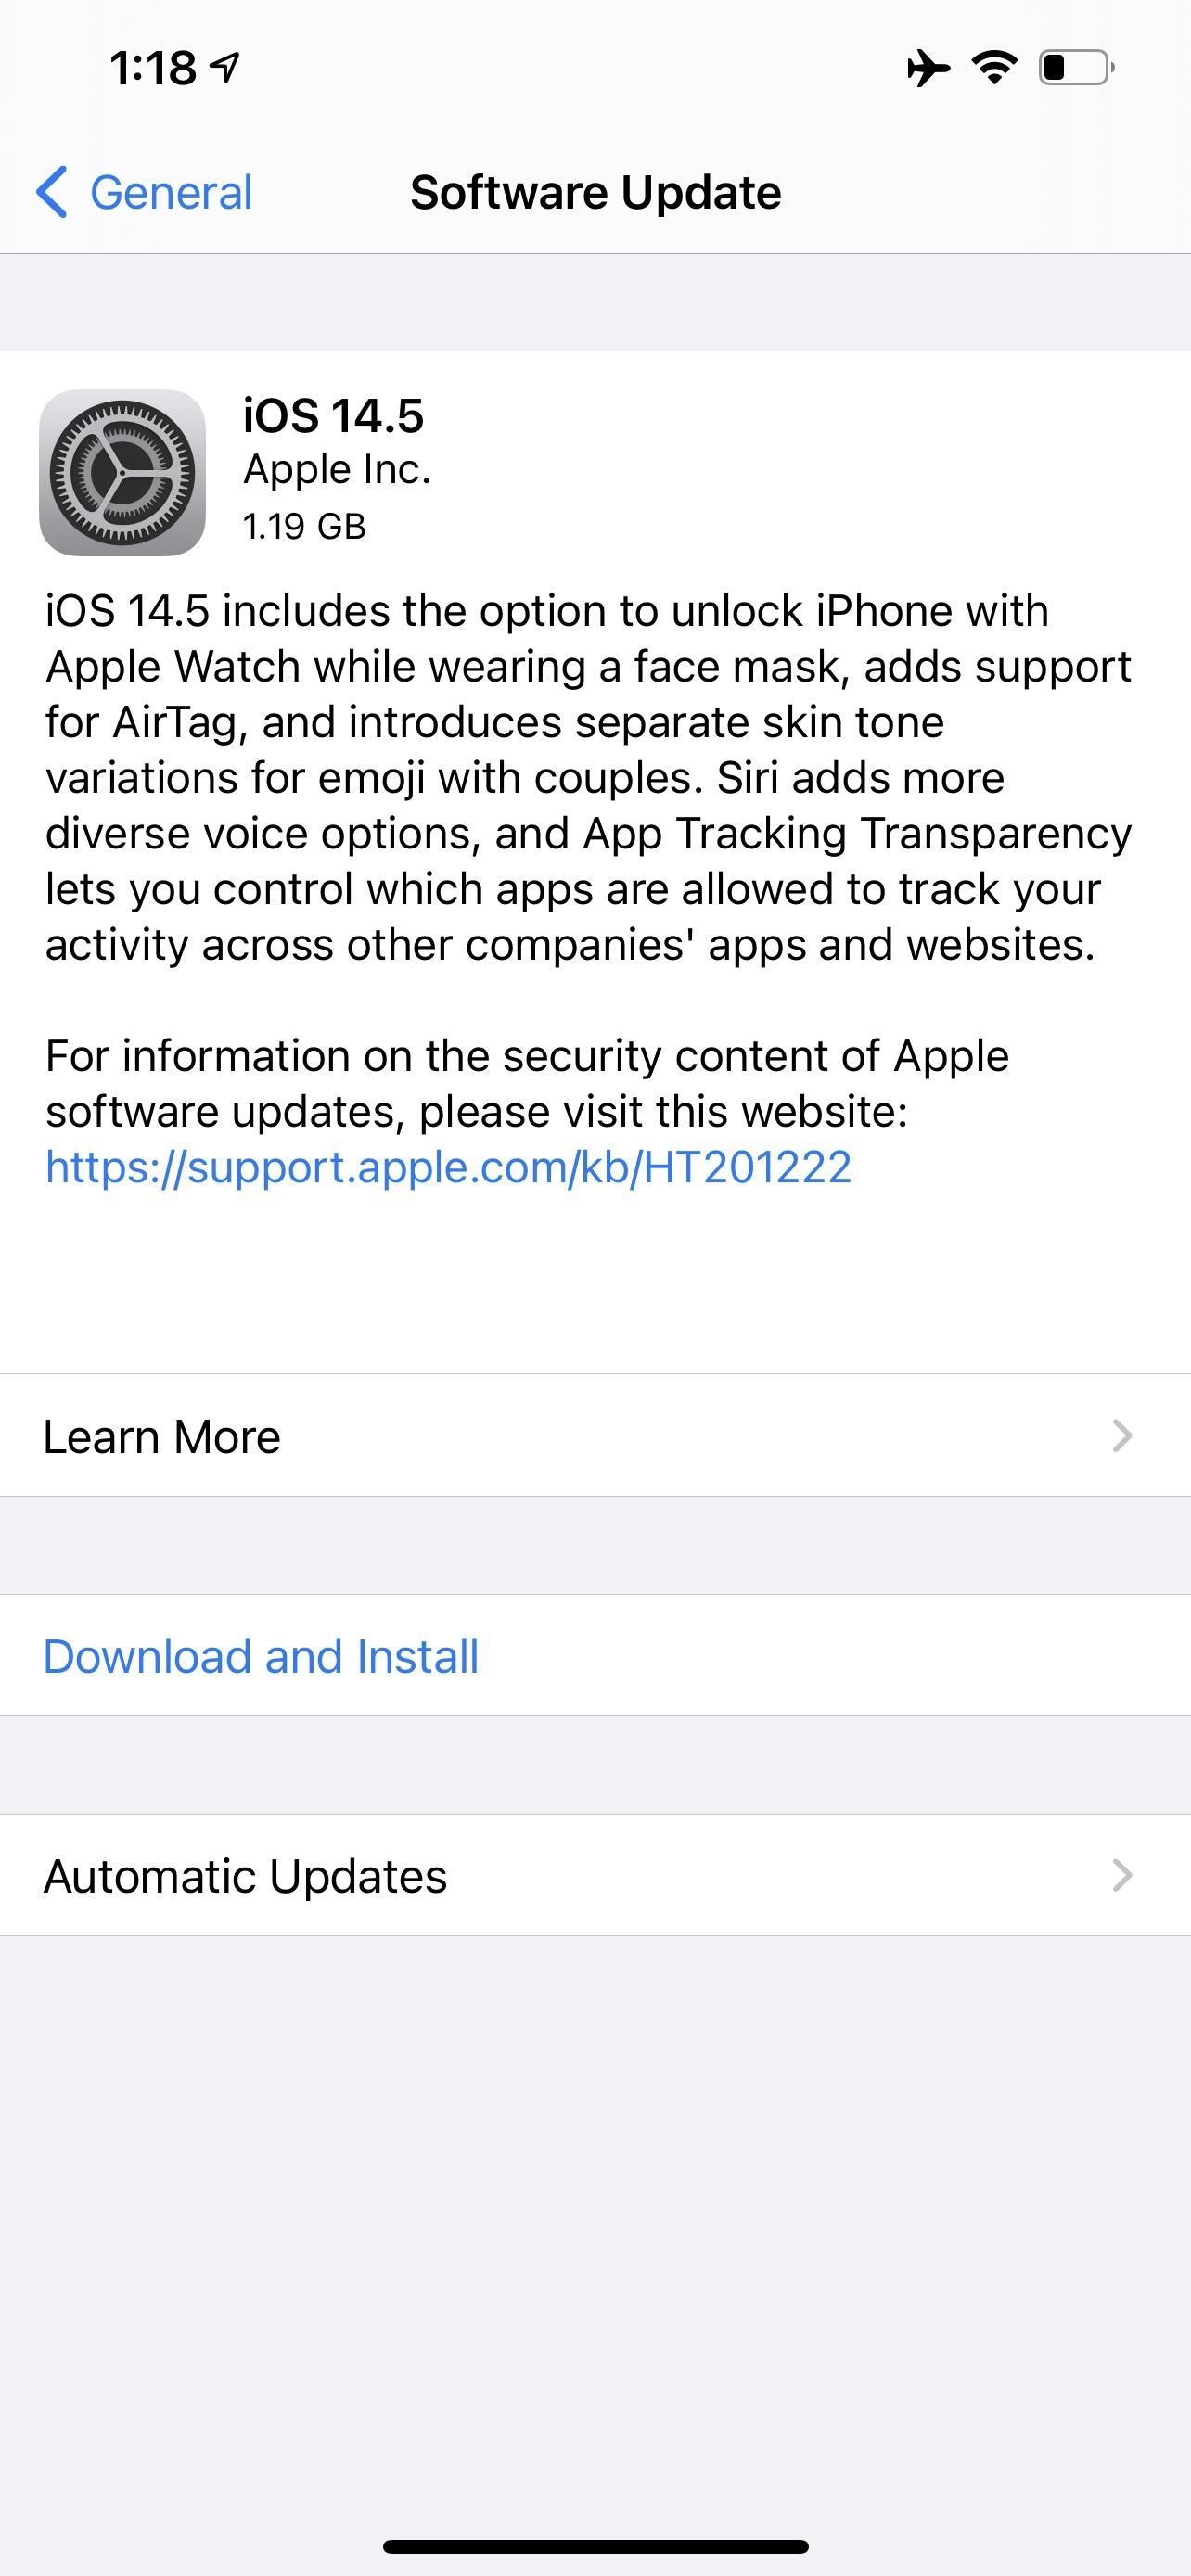 Apple Releases iOS 14.5 for iPhone, Introducing 60+ New Features & Changes